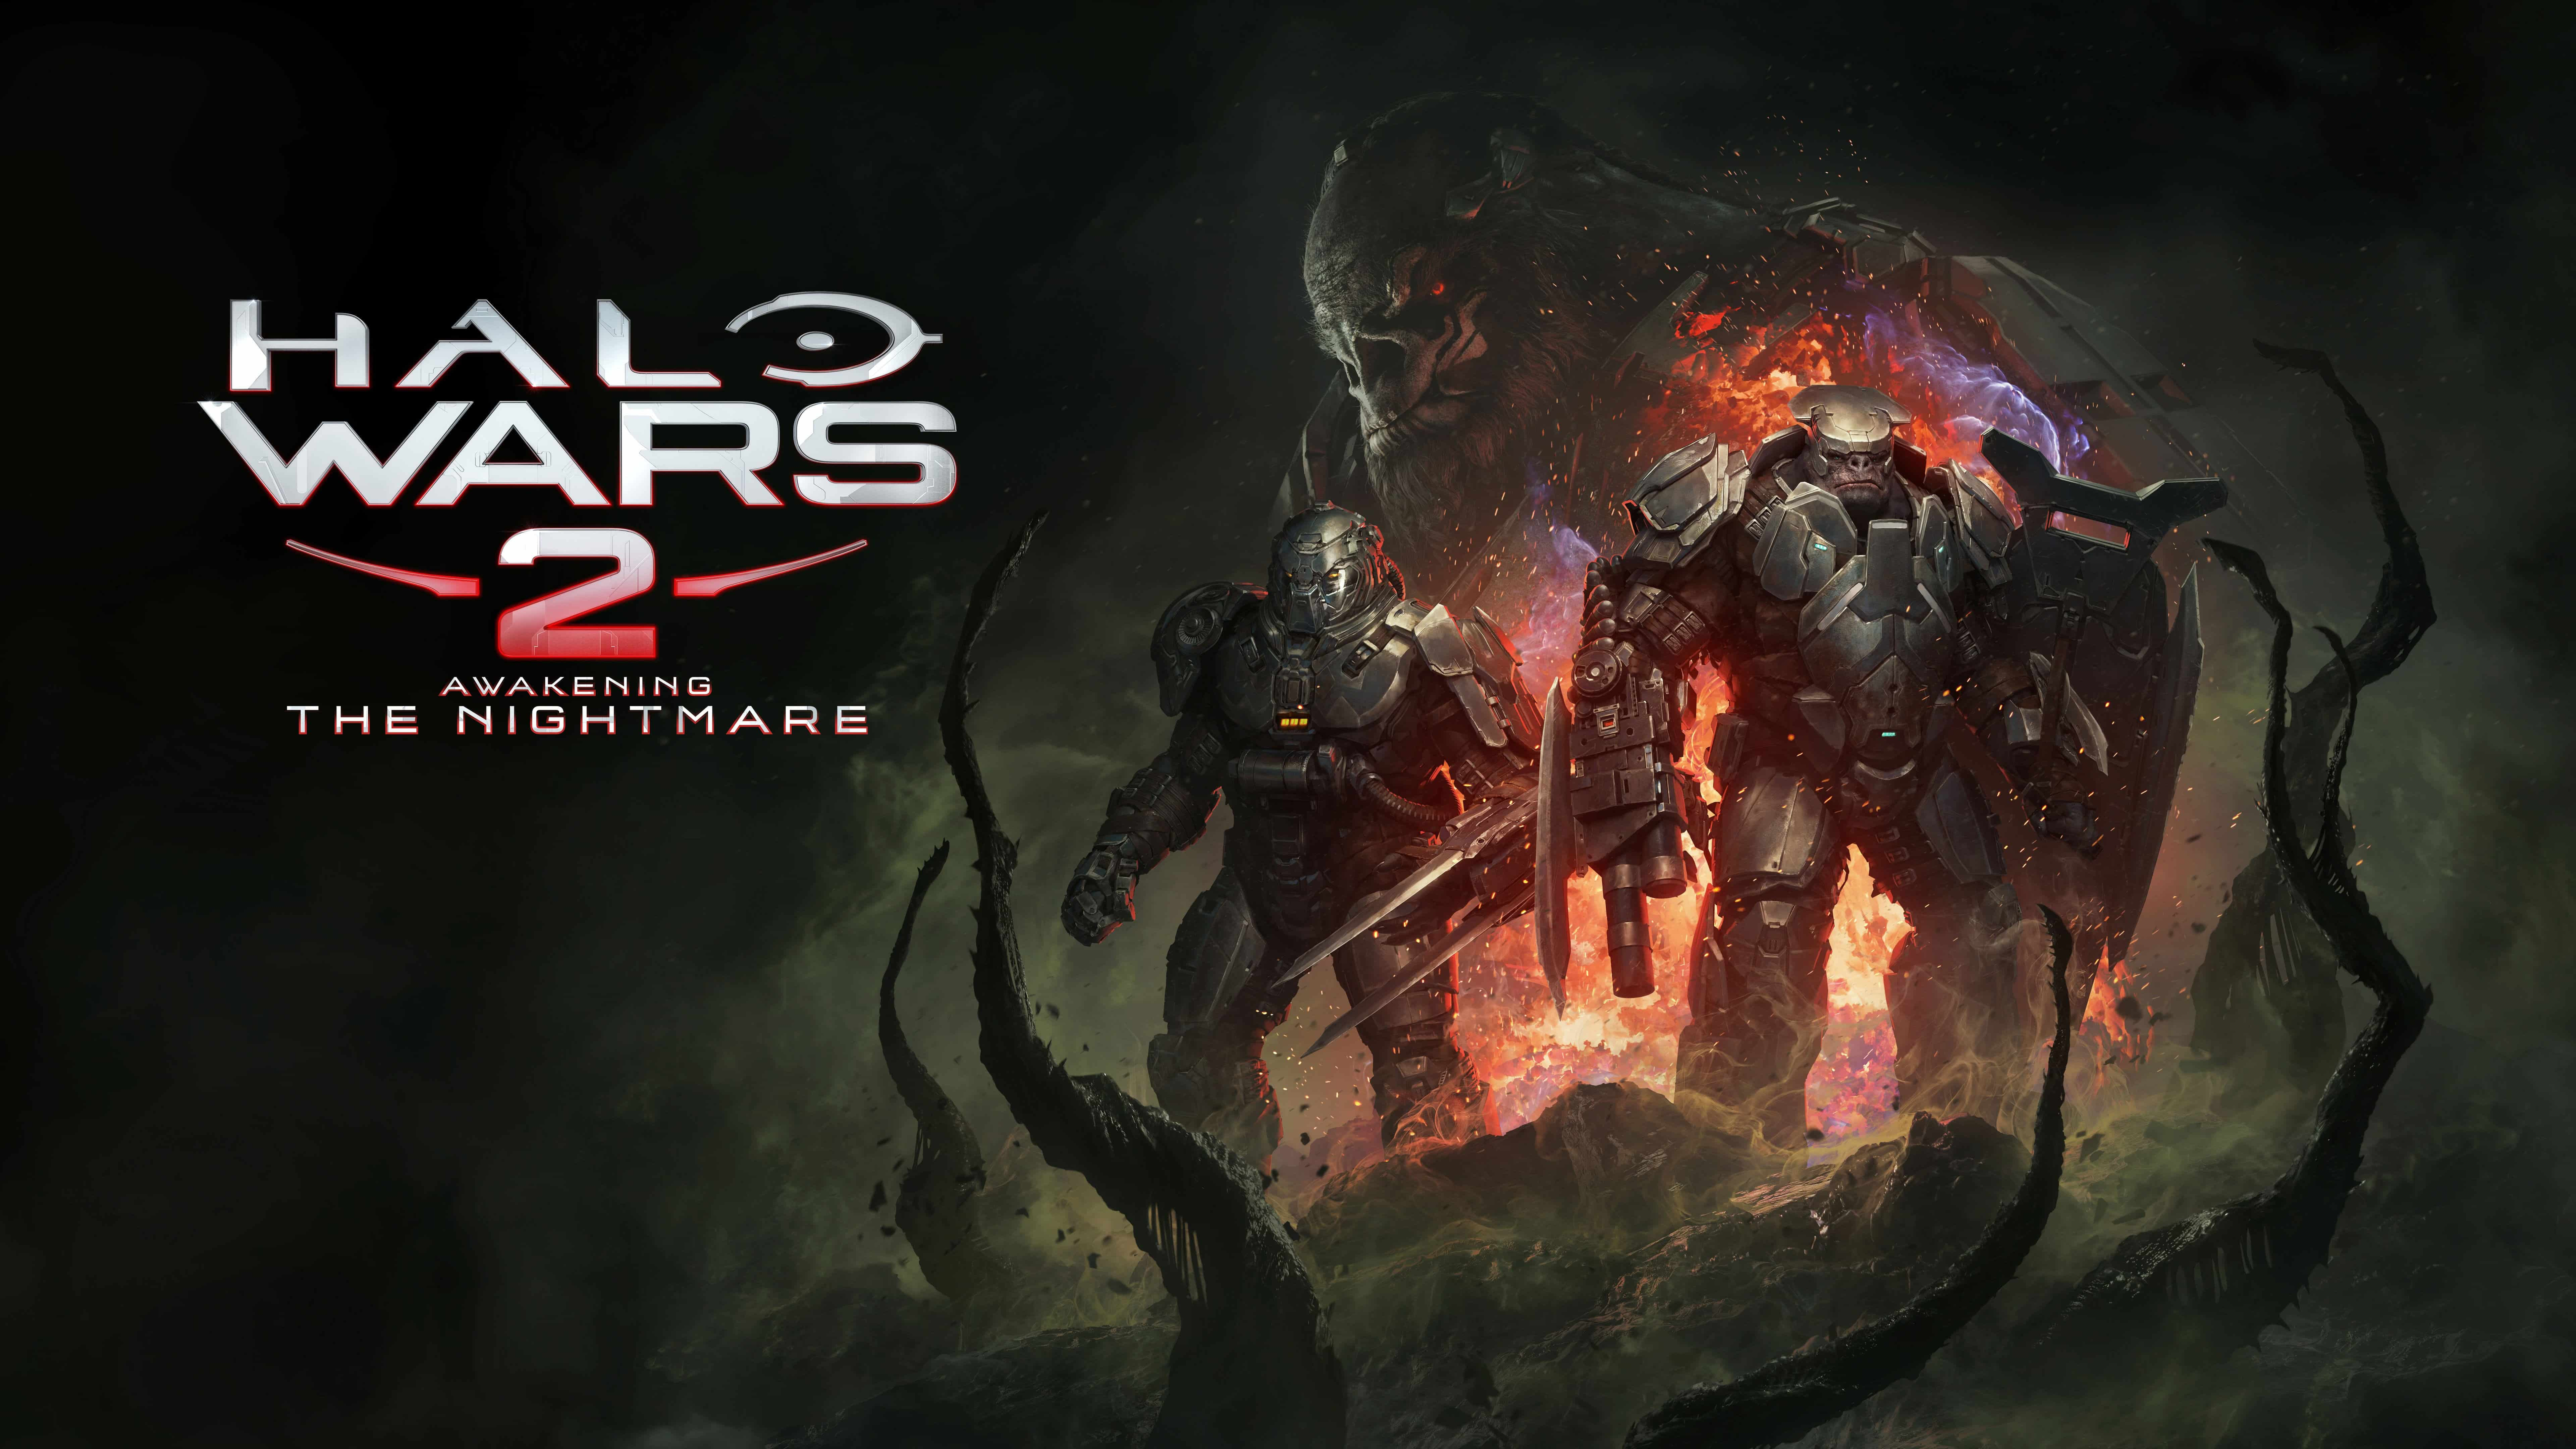 halo wars 2 awakening the nightmare uhd 8k wallpaper